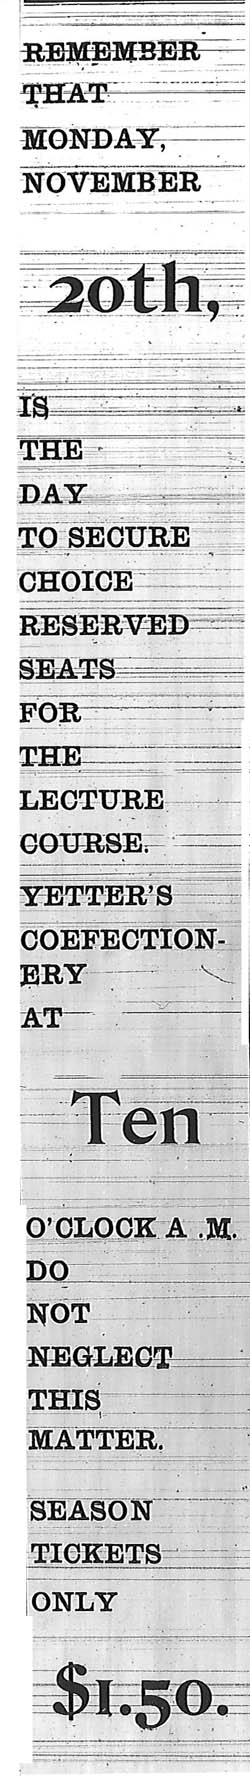 "Ad for the Skidmore (Missouri) Lecture Course in 1899.  ""Remember that Monday, November 20th, is the day to secure choice reserved seats for the lecture course. Yetter's Confectionery at ten o'clock a.m.  Do not neglect this matter.  Season tickets only $1.50."""